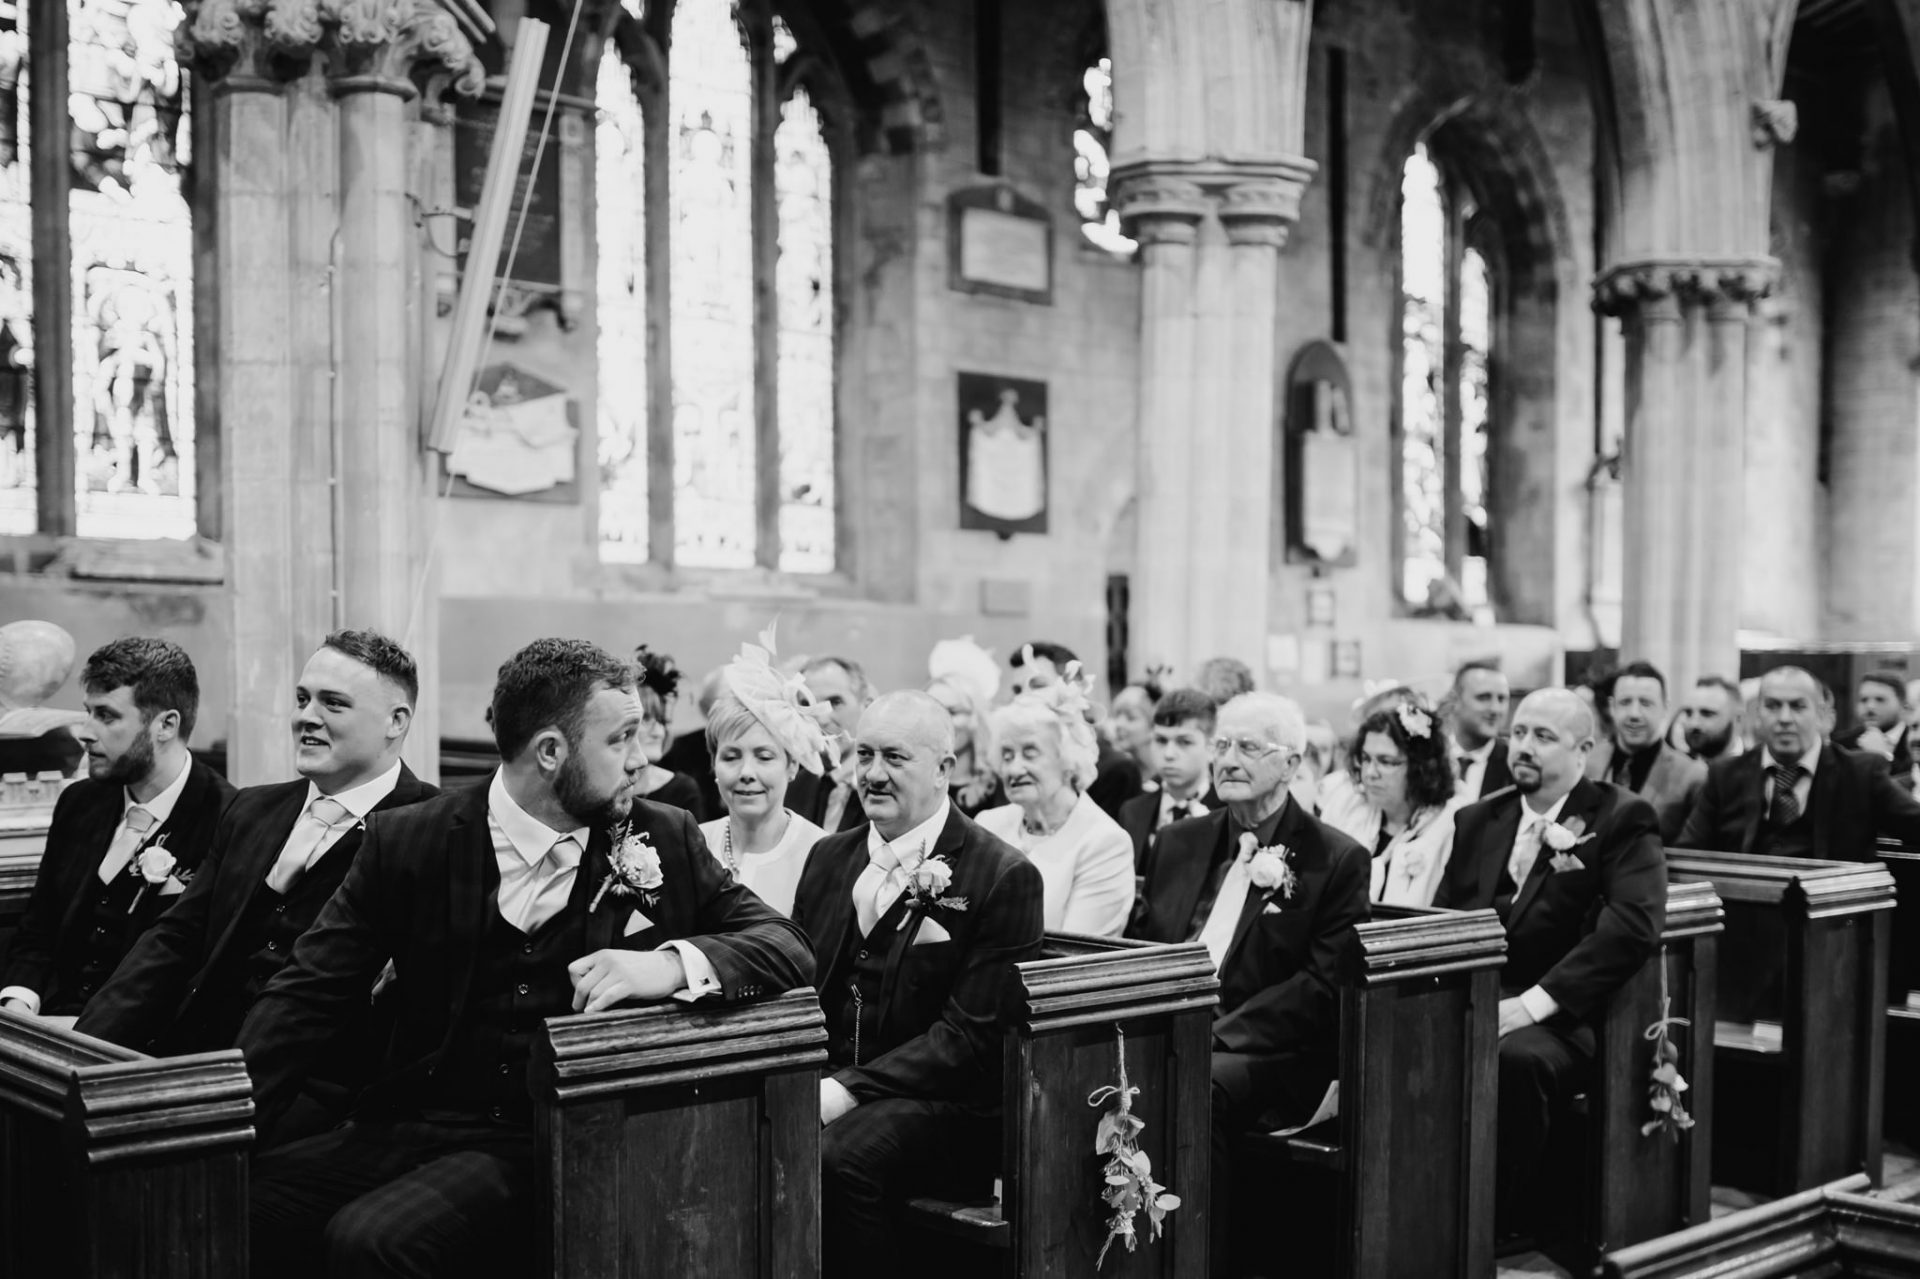 groom waiting in church for bride to arrive